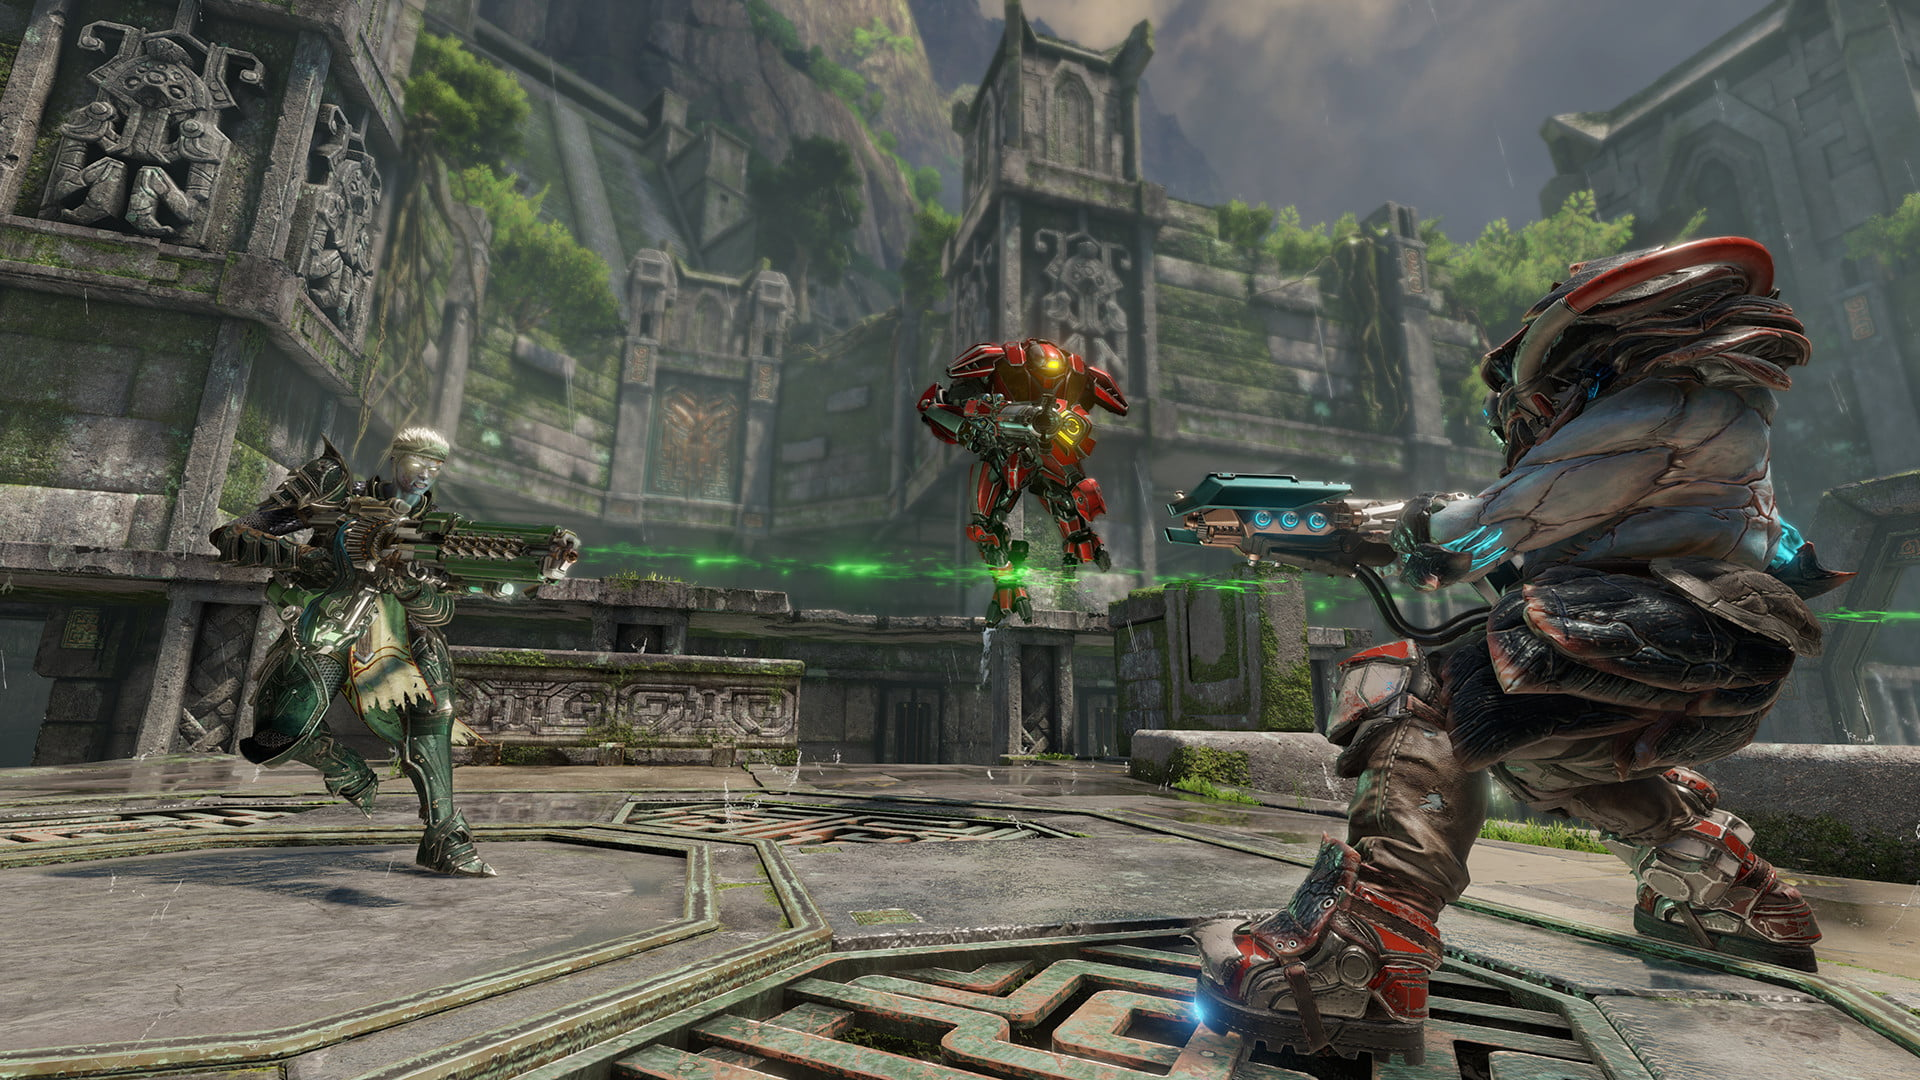 Strap Yourself In For 'Quake Champions' Gameplay Trailer